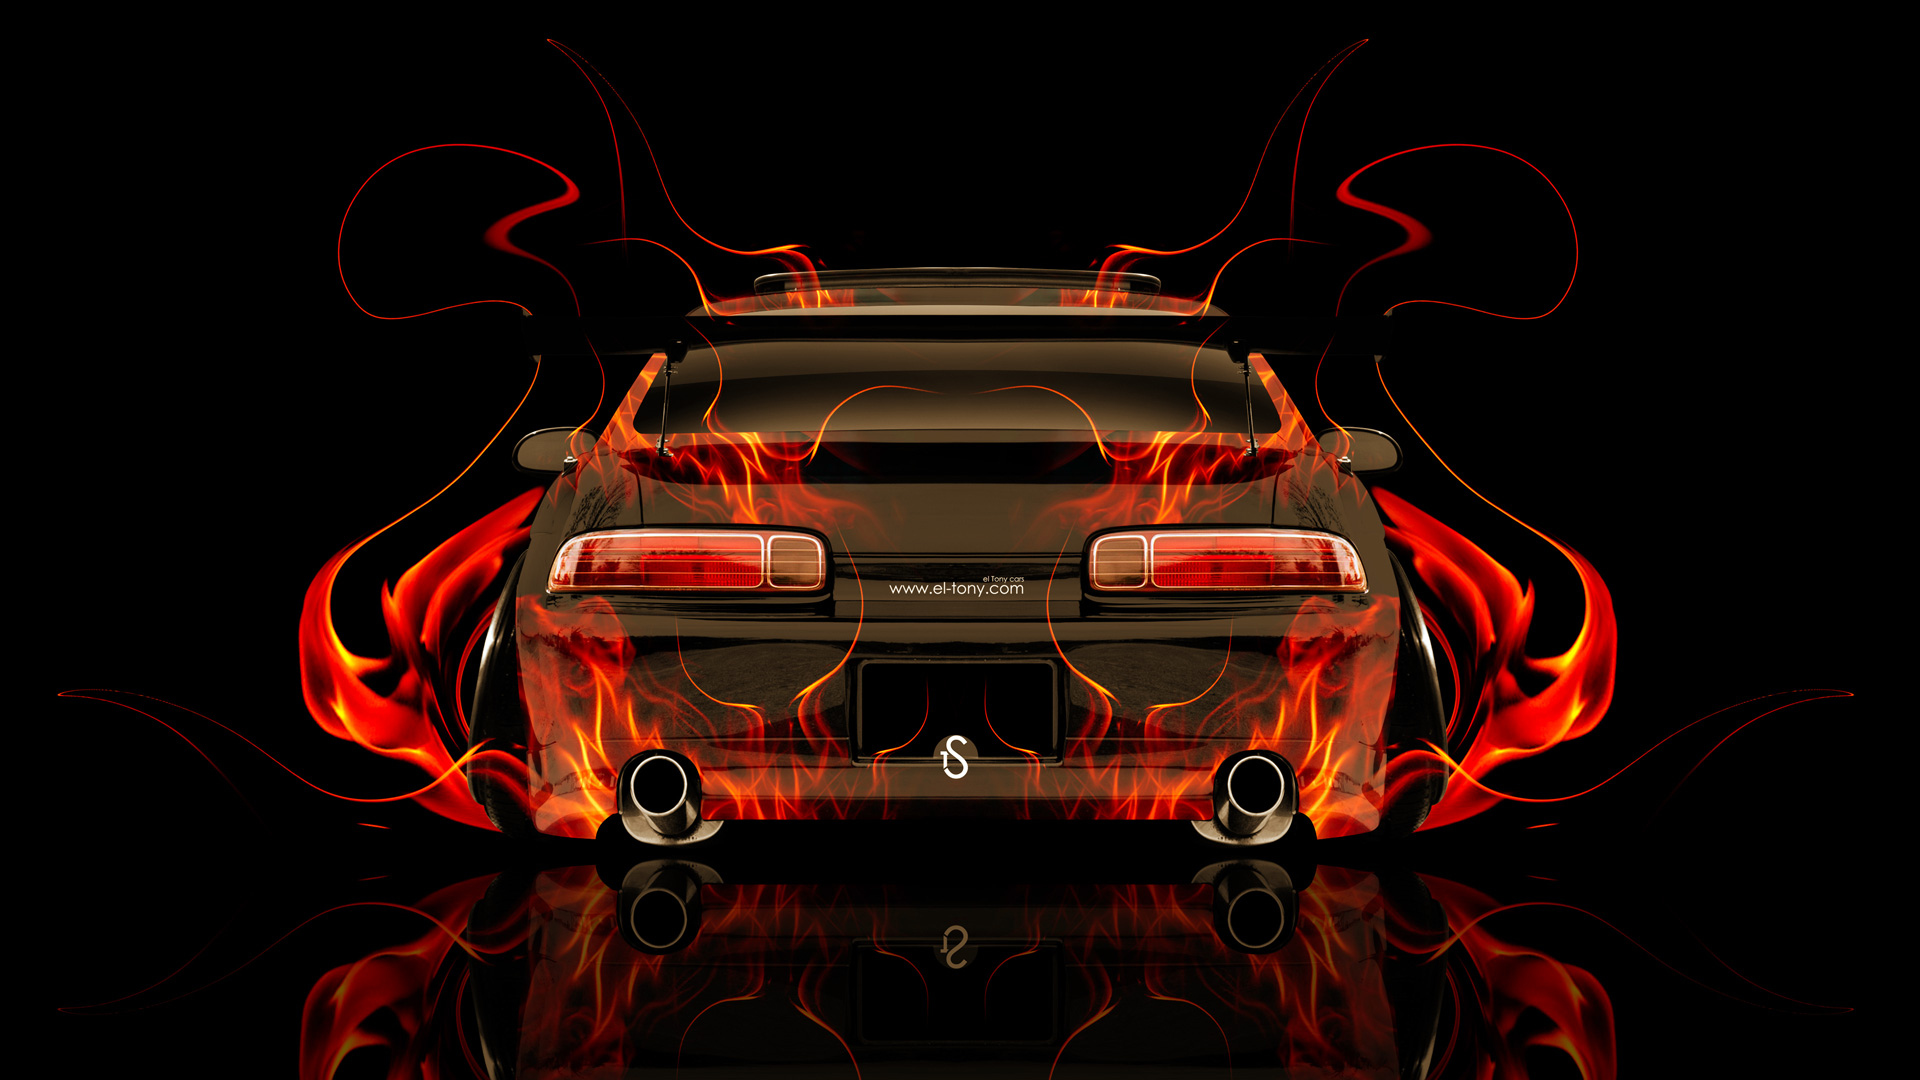 Toyota Soarer JDM Tuning Back Fire Abstract Car